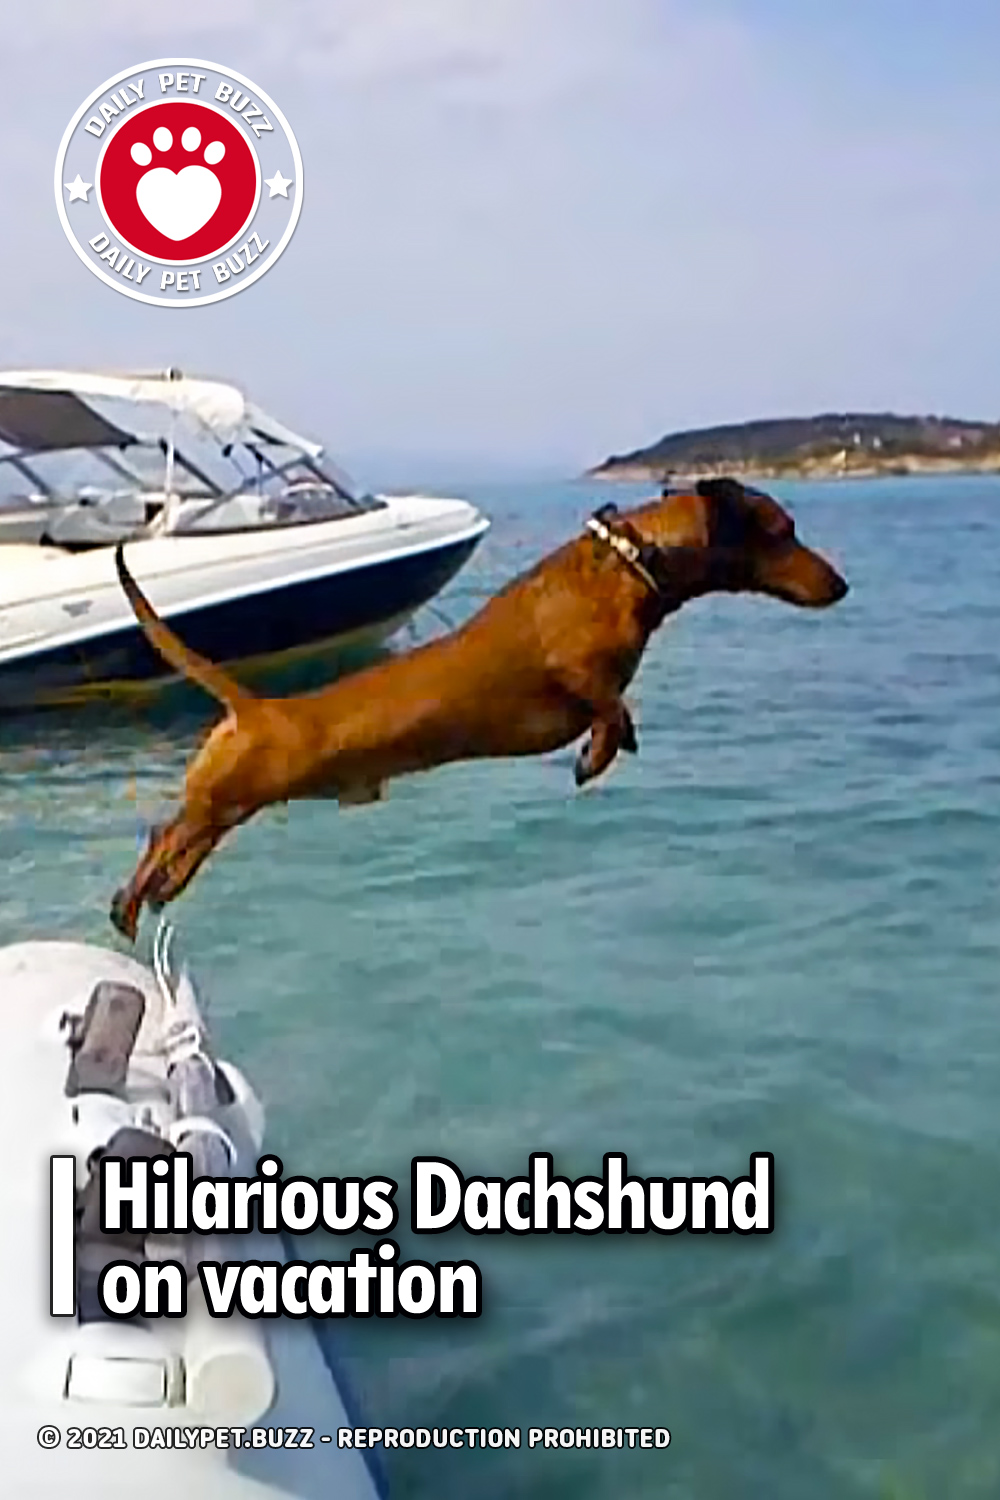 Hilarious Dachshund on vacation